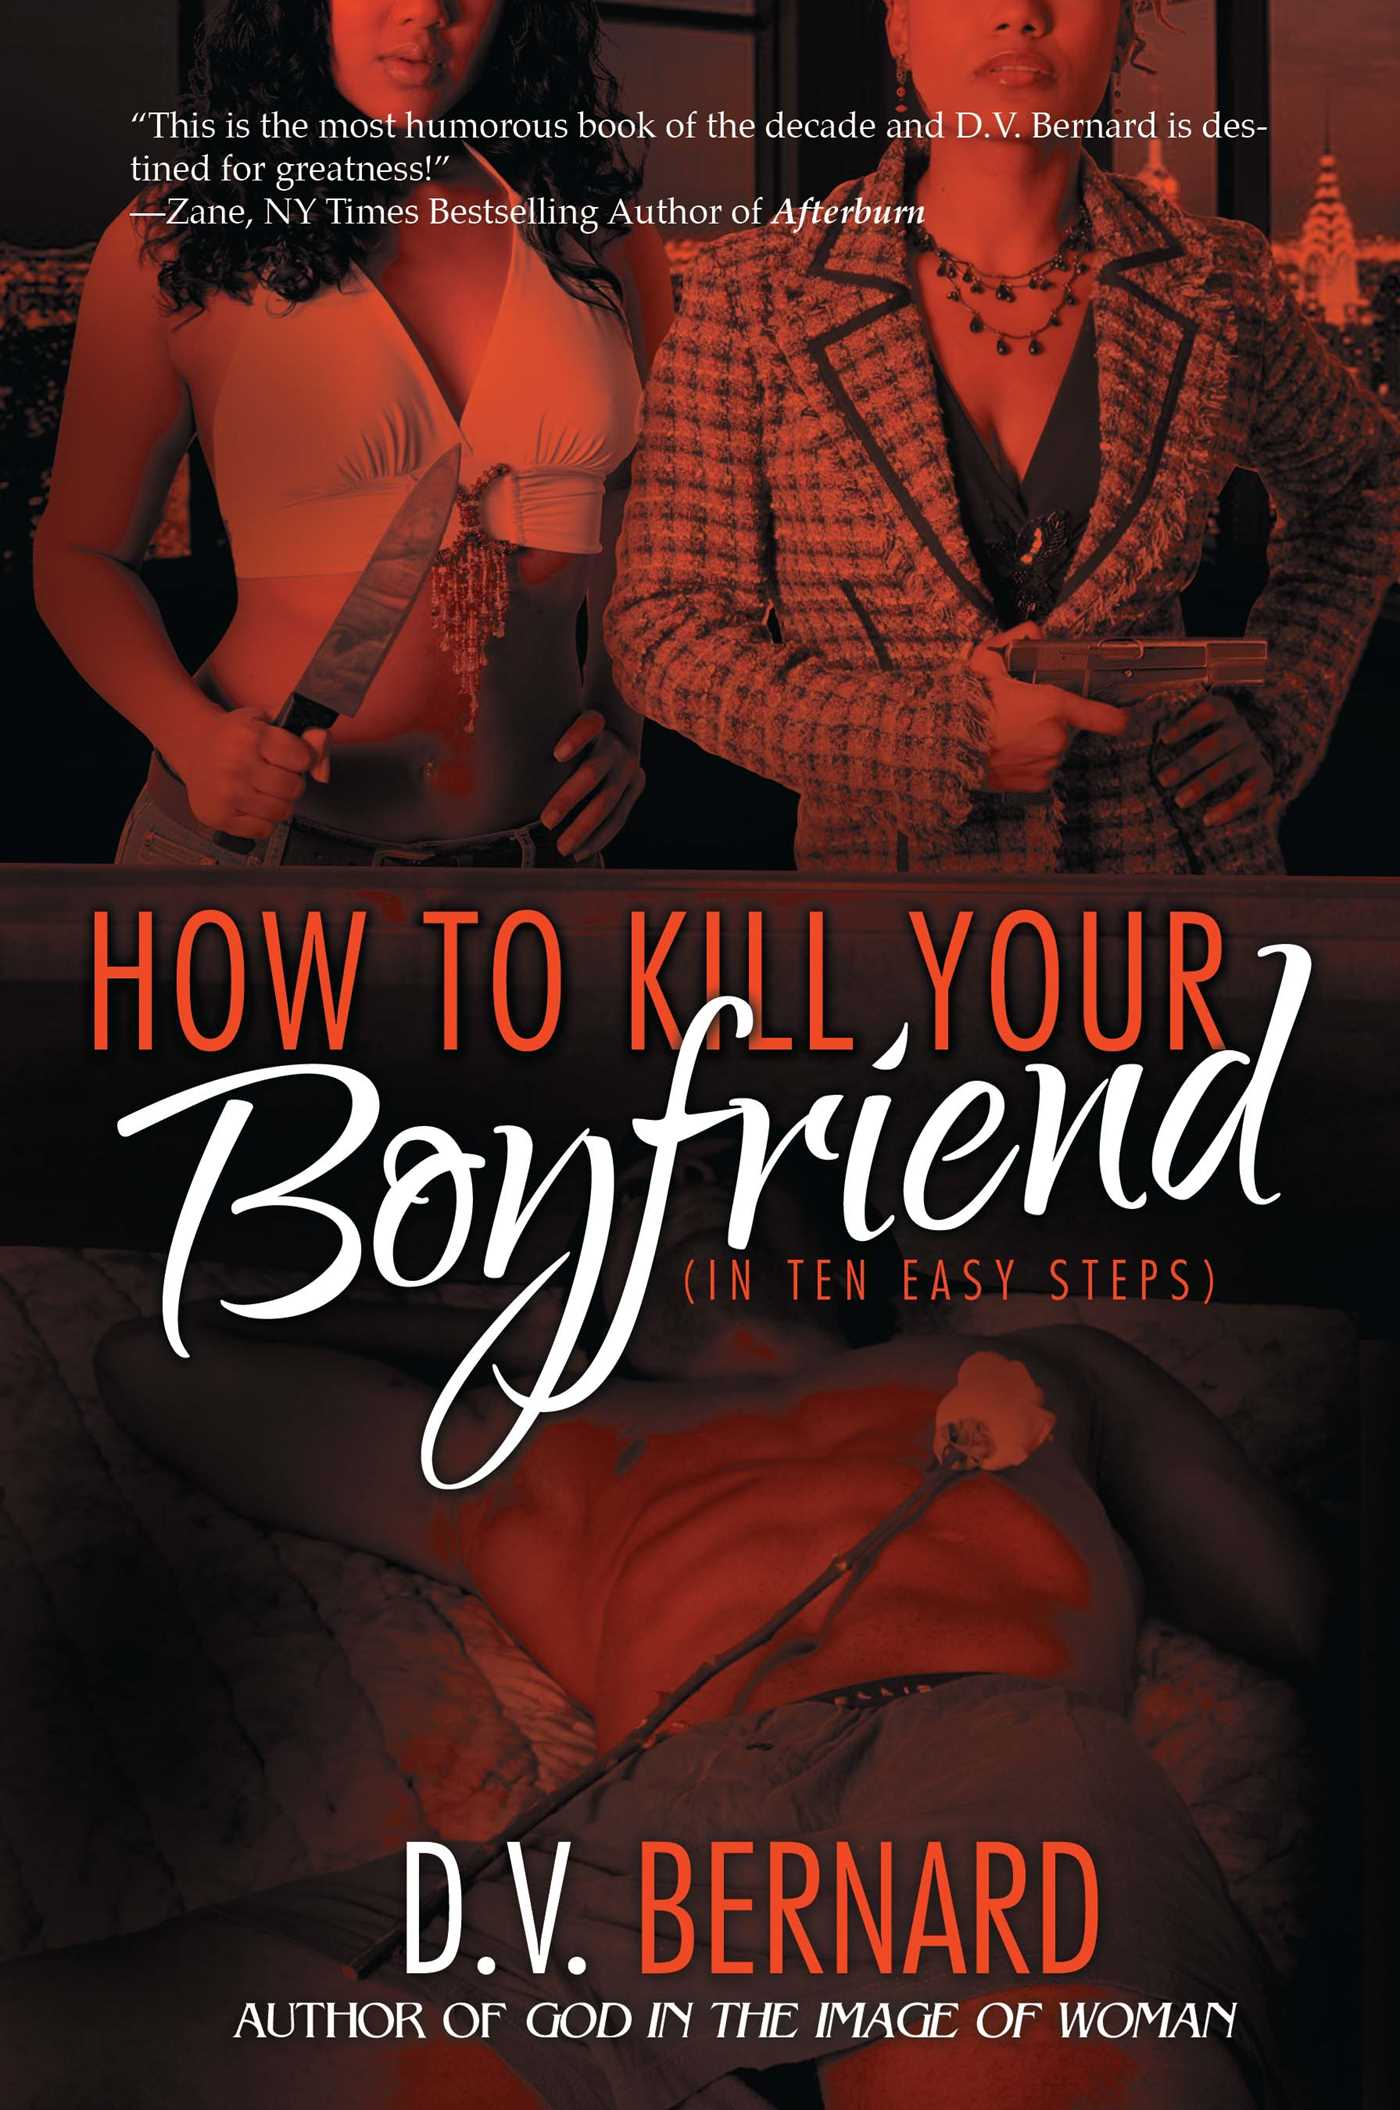 How to kill your boyfriend in 10 easy steps 9781593090661 hr